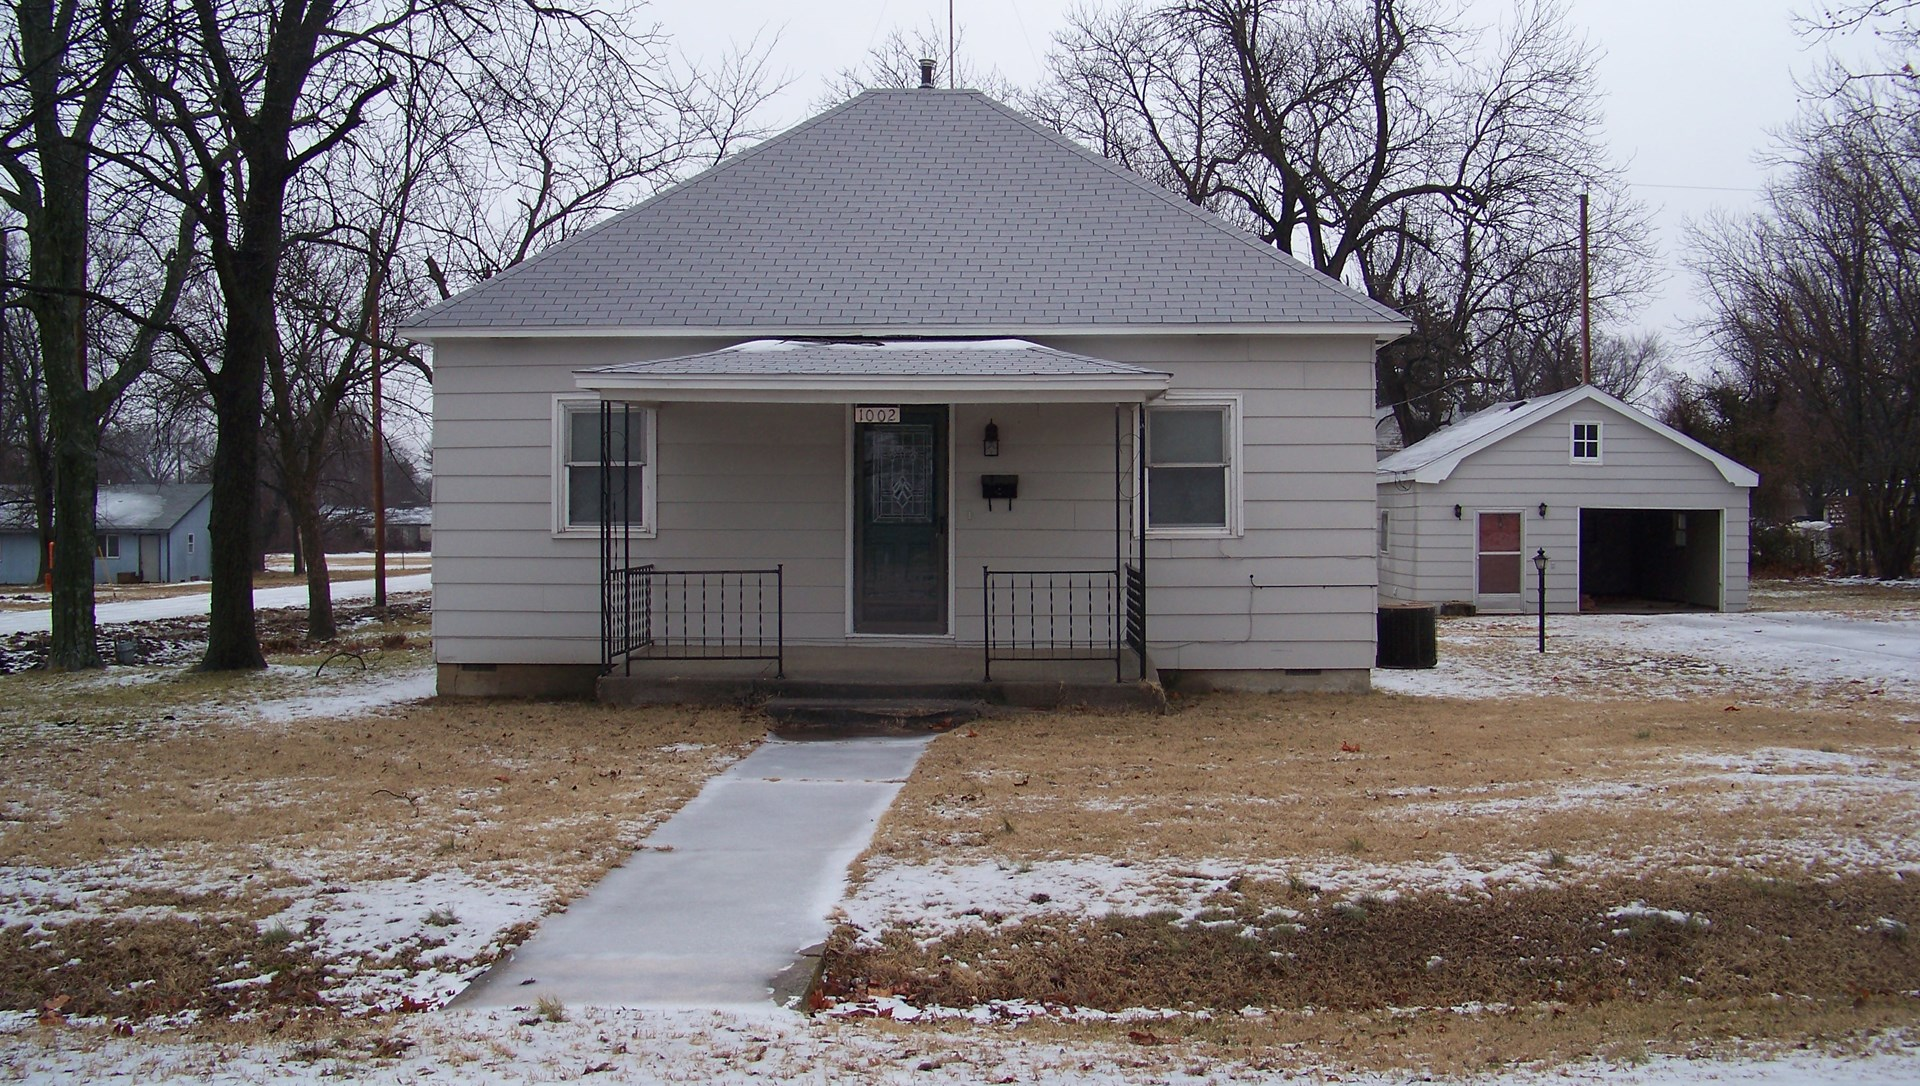 Home for sale in Humboldt Kansas